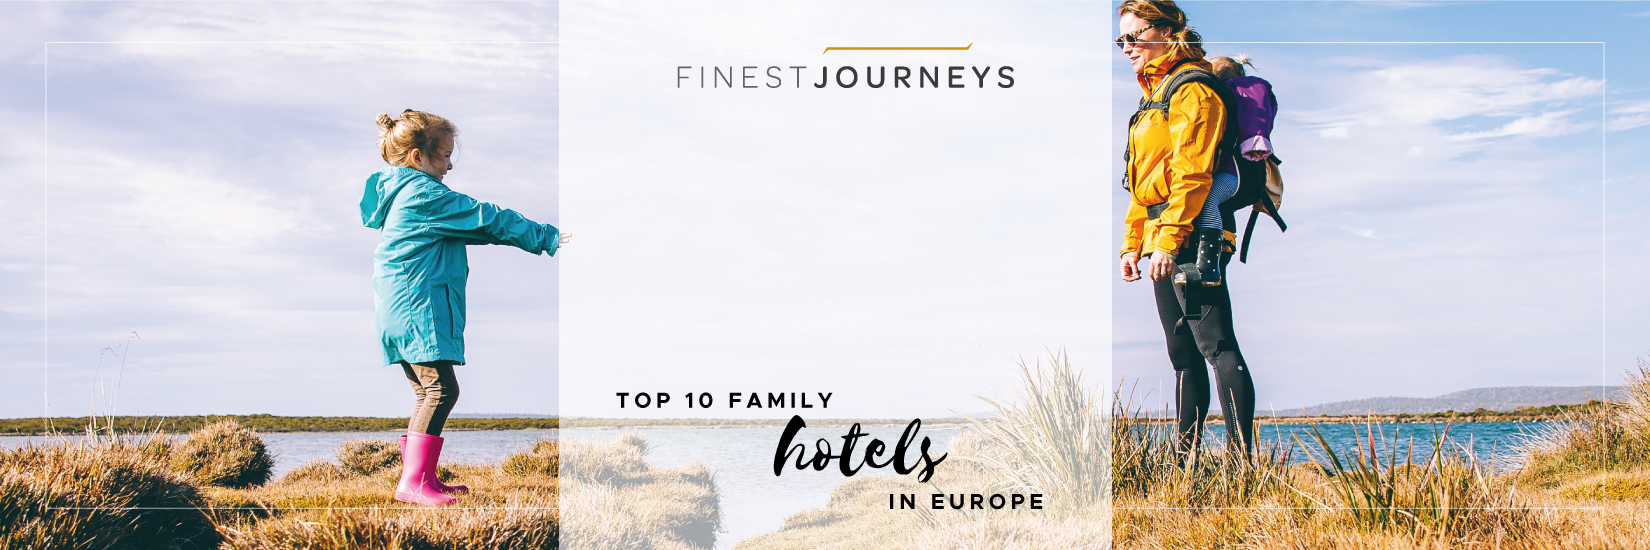 IMG : Top 10 Family Hotels in Europe